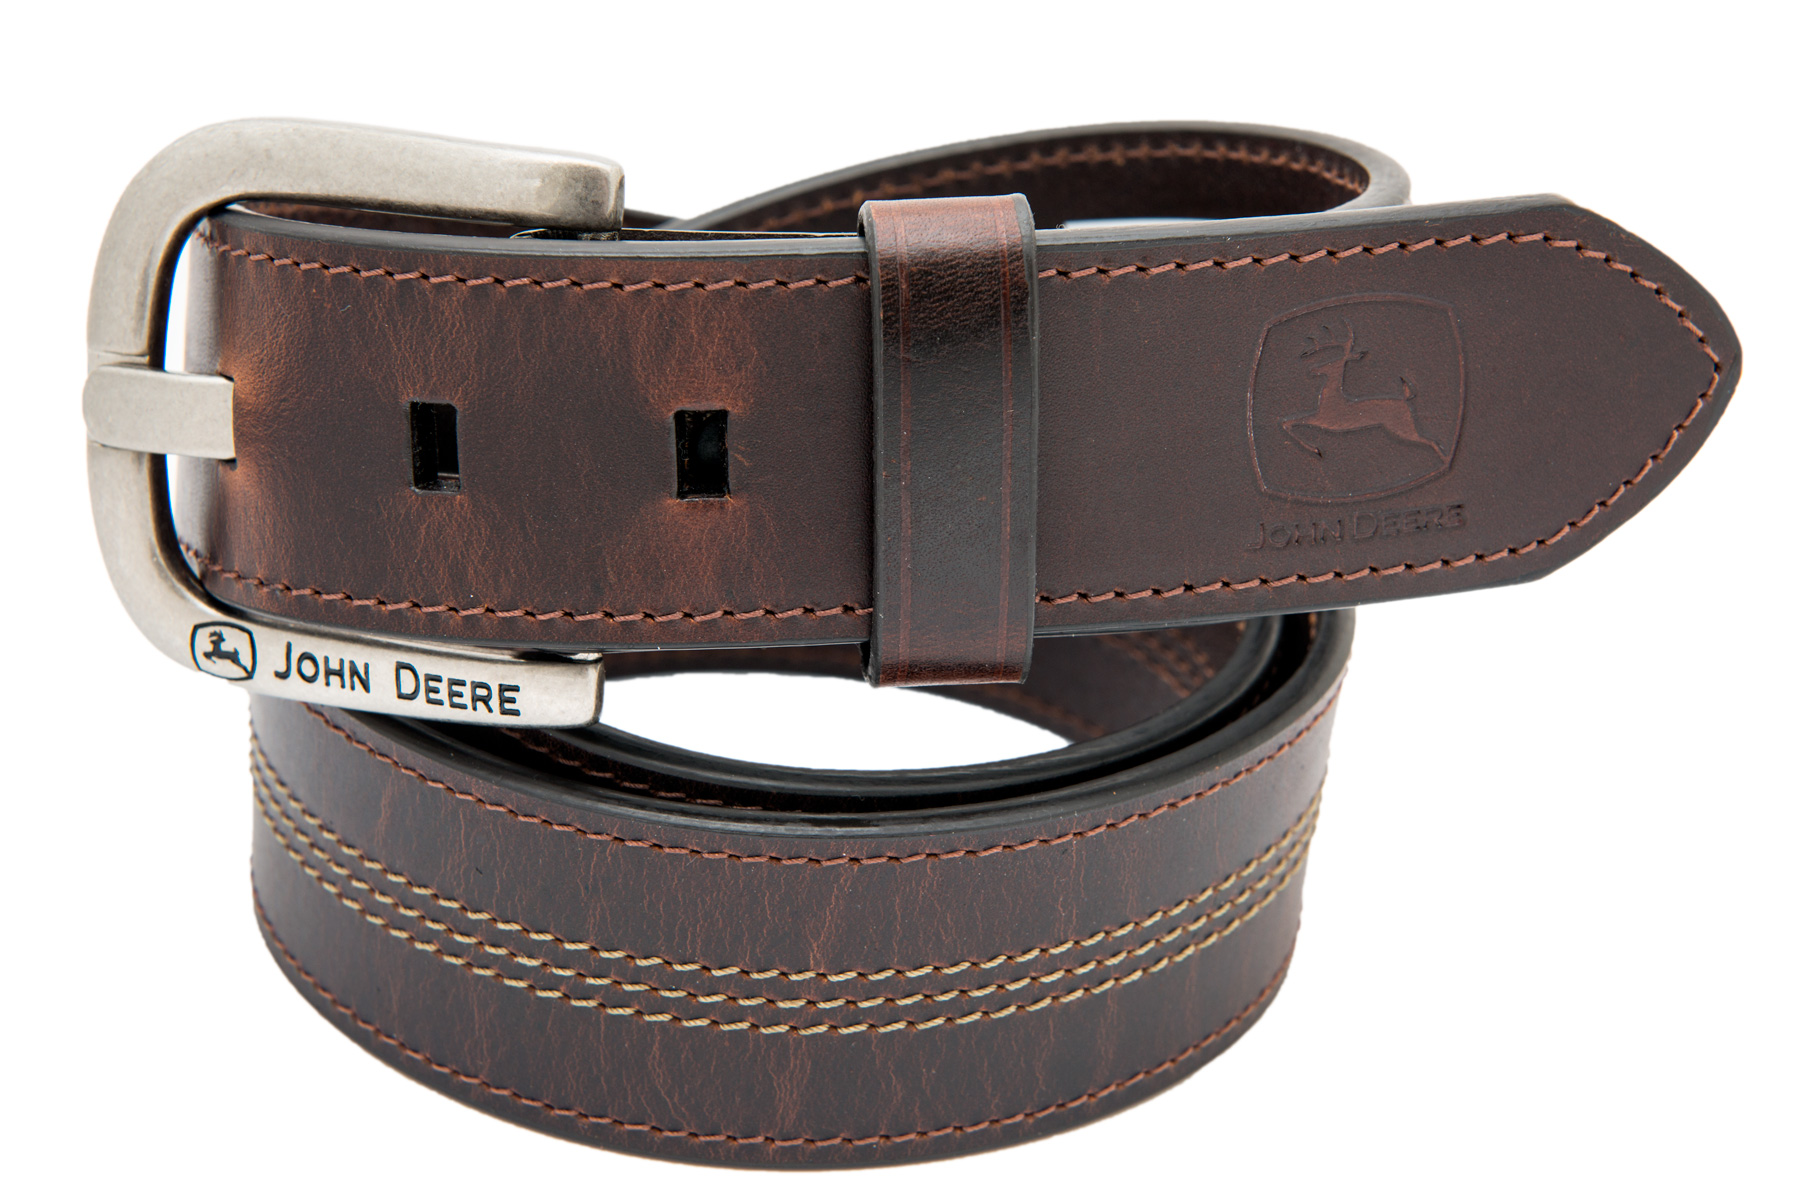 John Deere Men s Brown Oil Tanned Genuine Leather Belt - Sizes 32 ... e431ac60d53